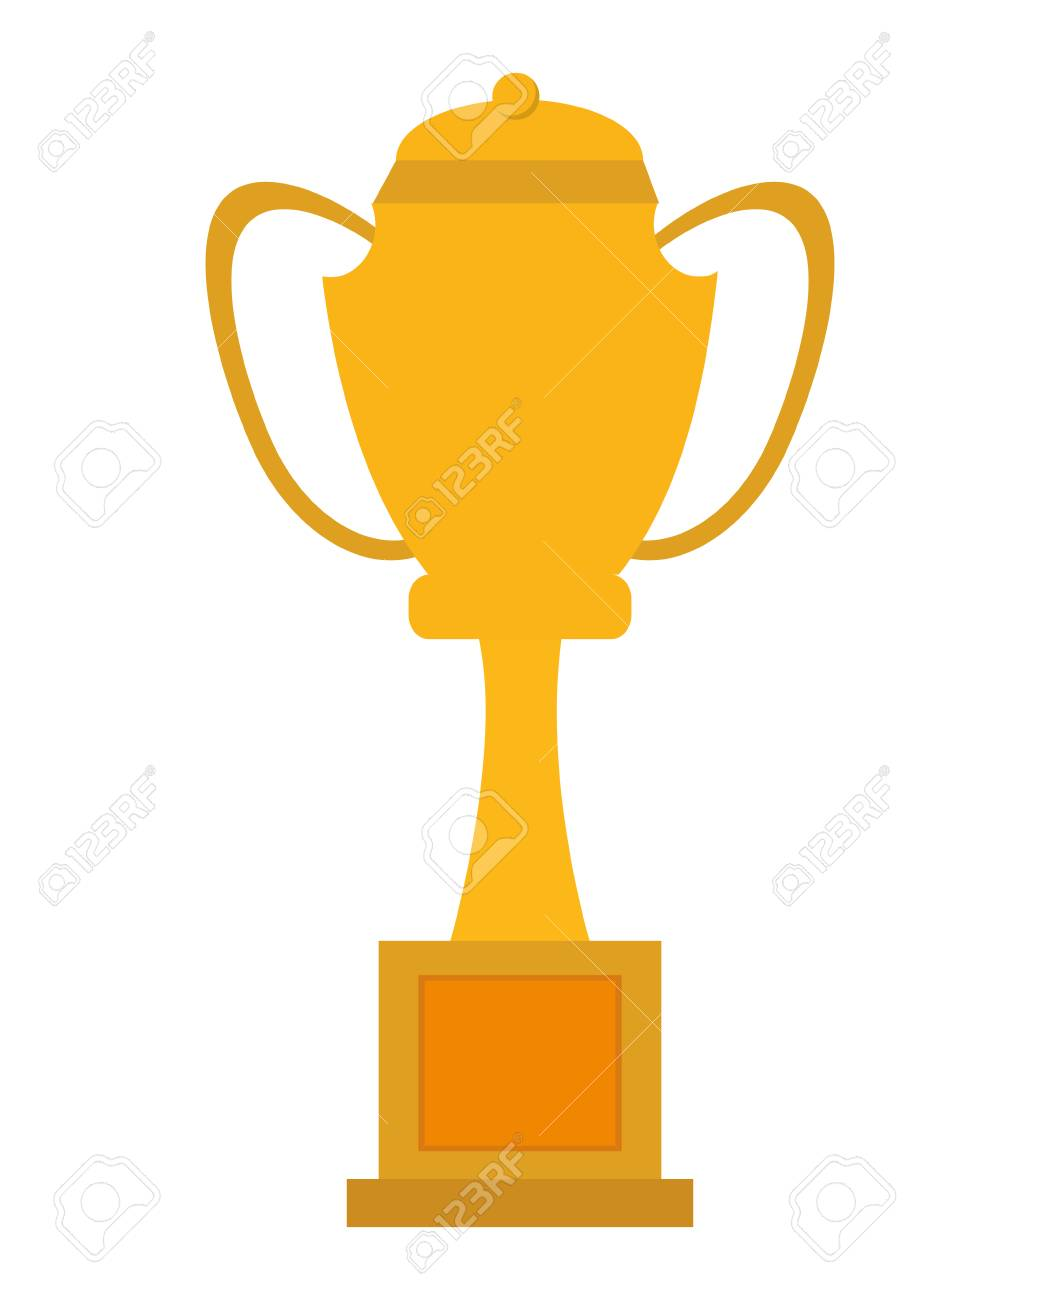 Simple Flat Design Yellow Trophy Cup Icon Vector Illustration Stock